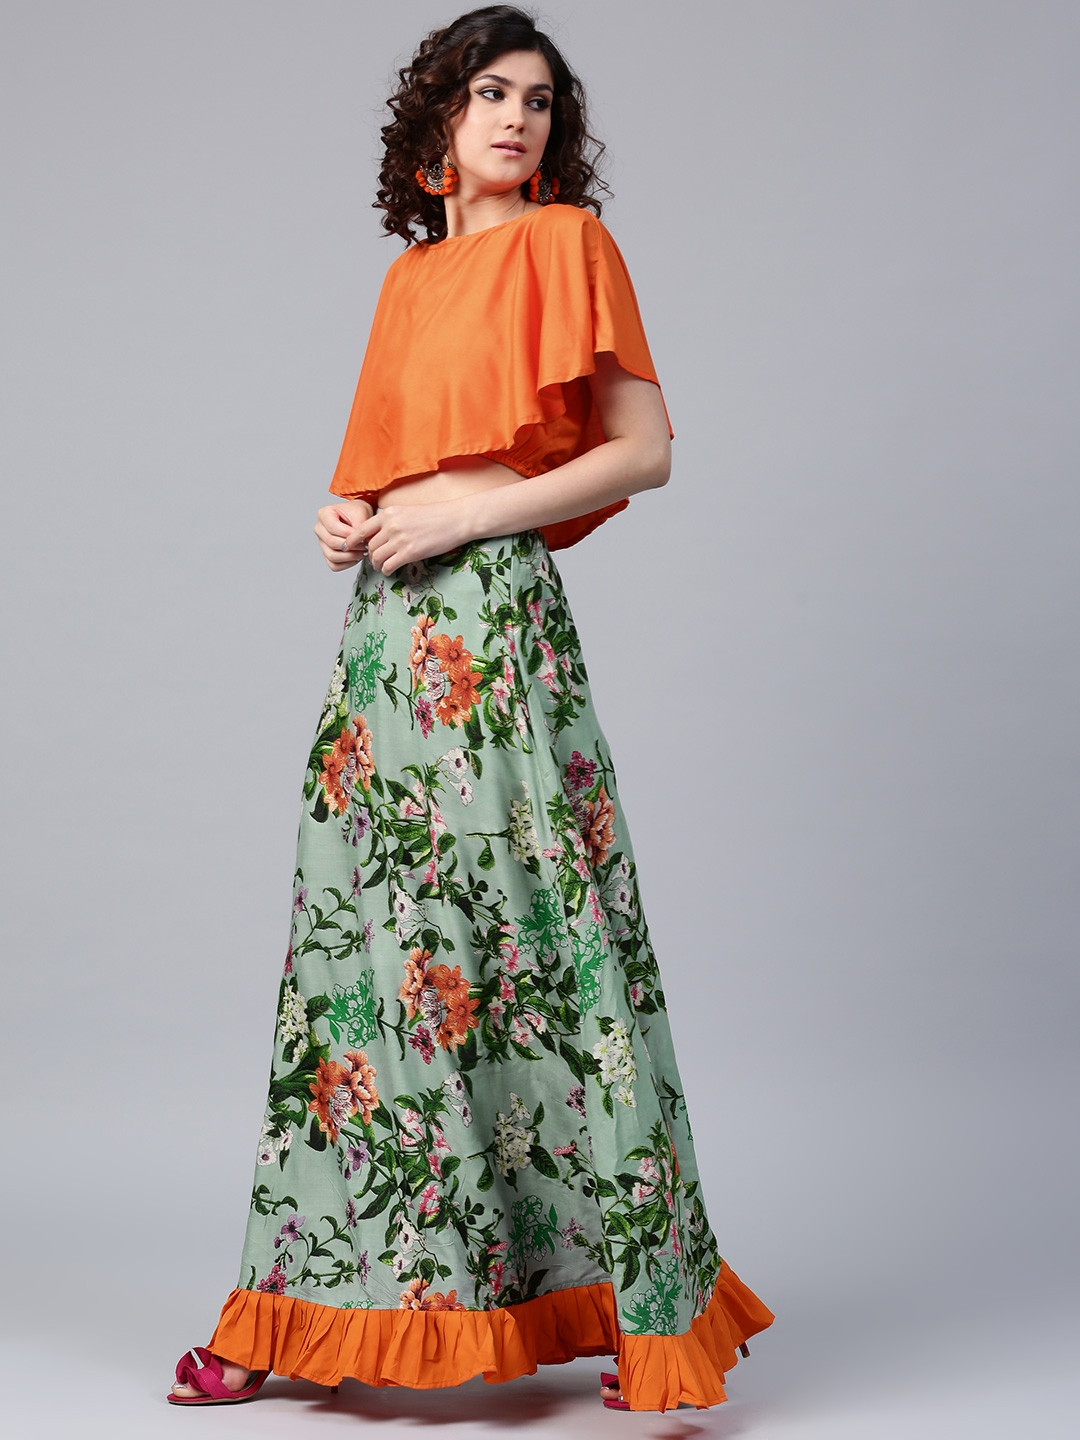 4fa7315c17 Buy AKS Orange & Green Layered Crop Top With Floral Print Maxi Skirt ...